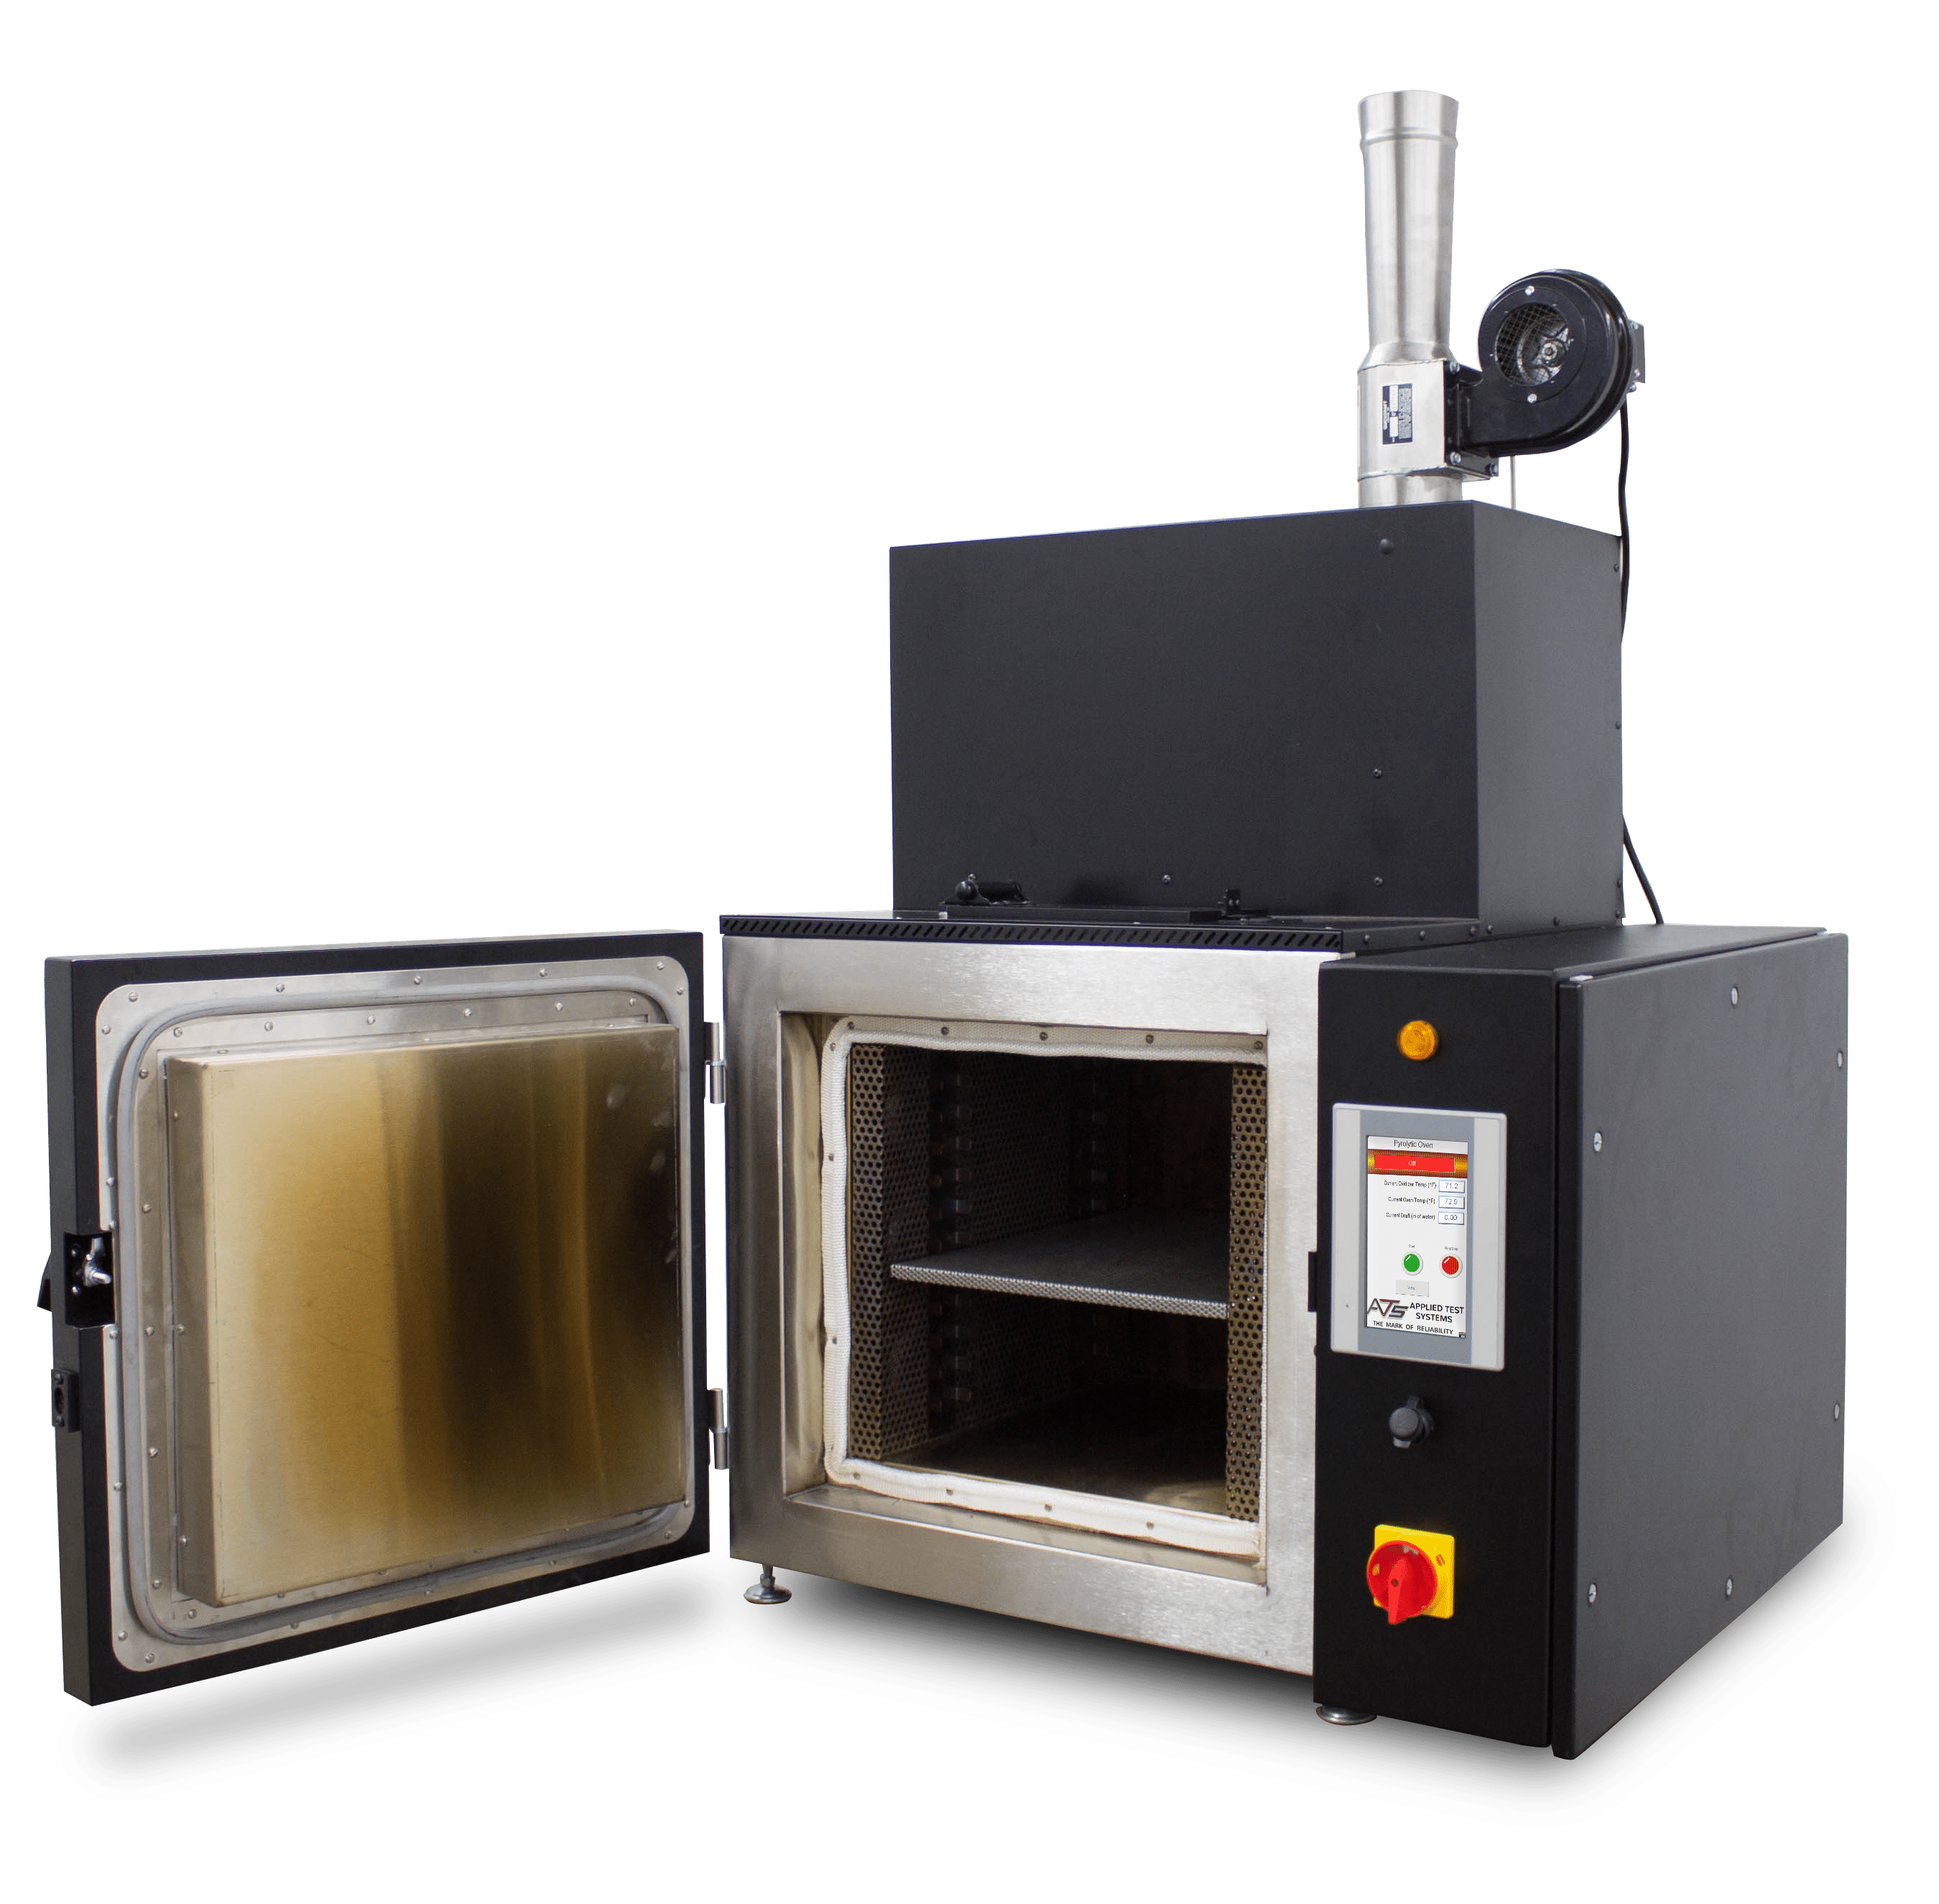 ATS Pyrolytic Oven